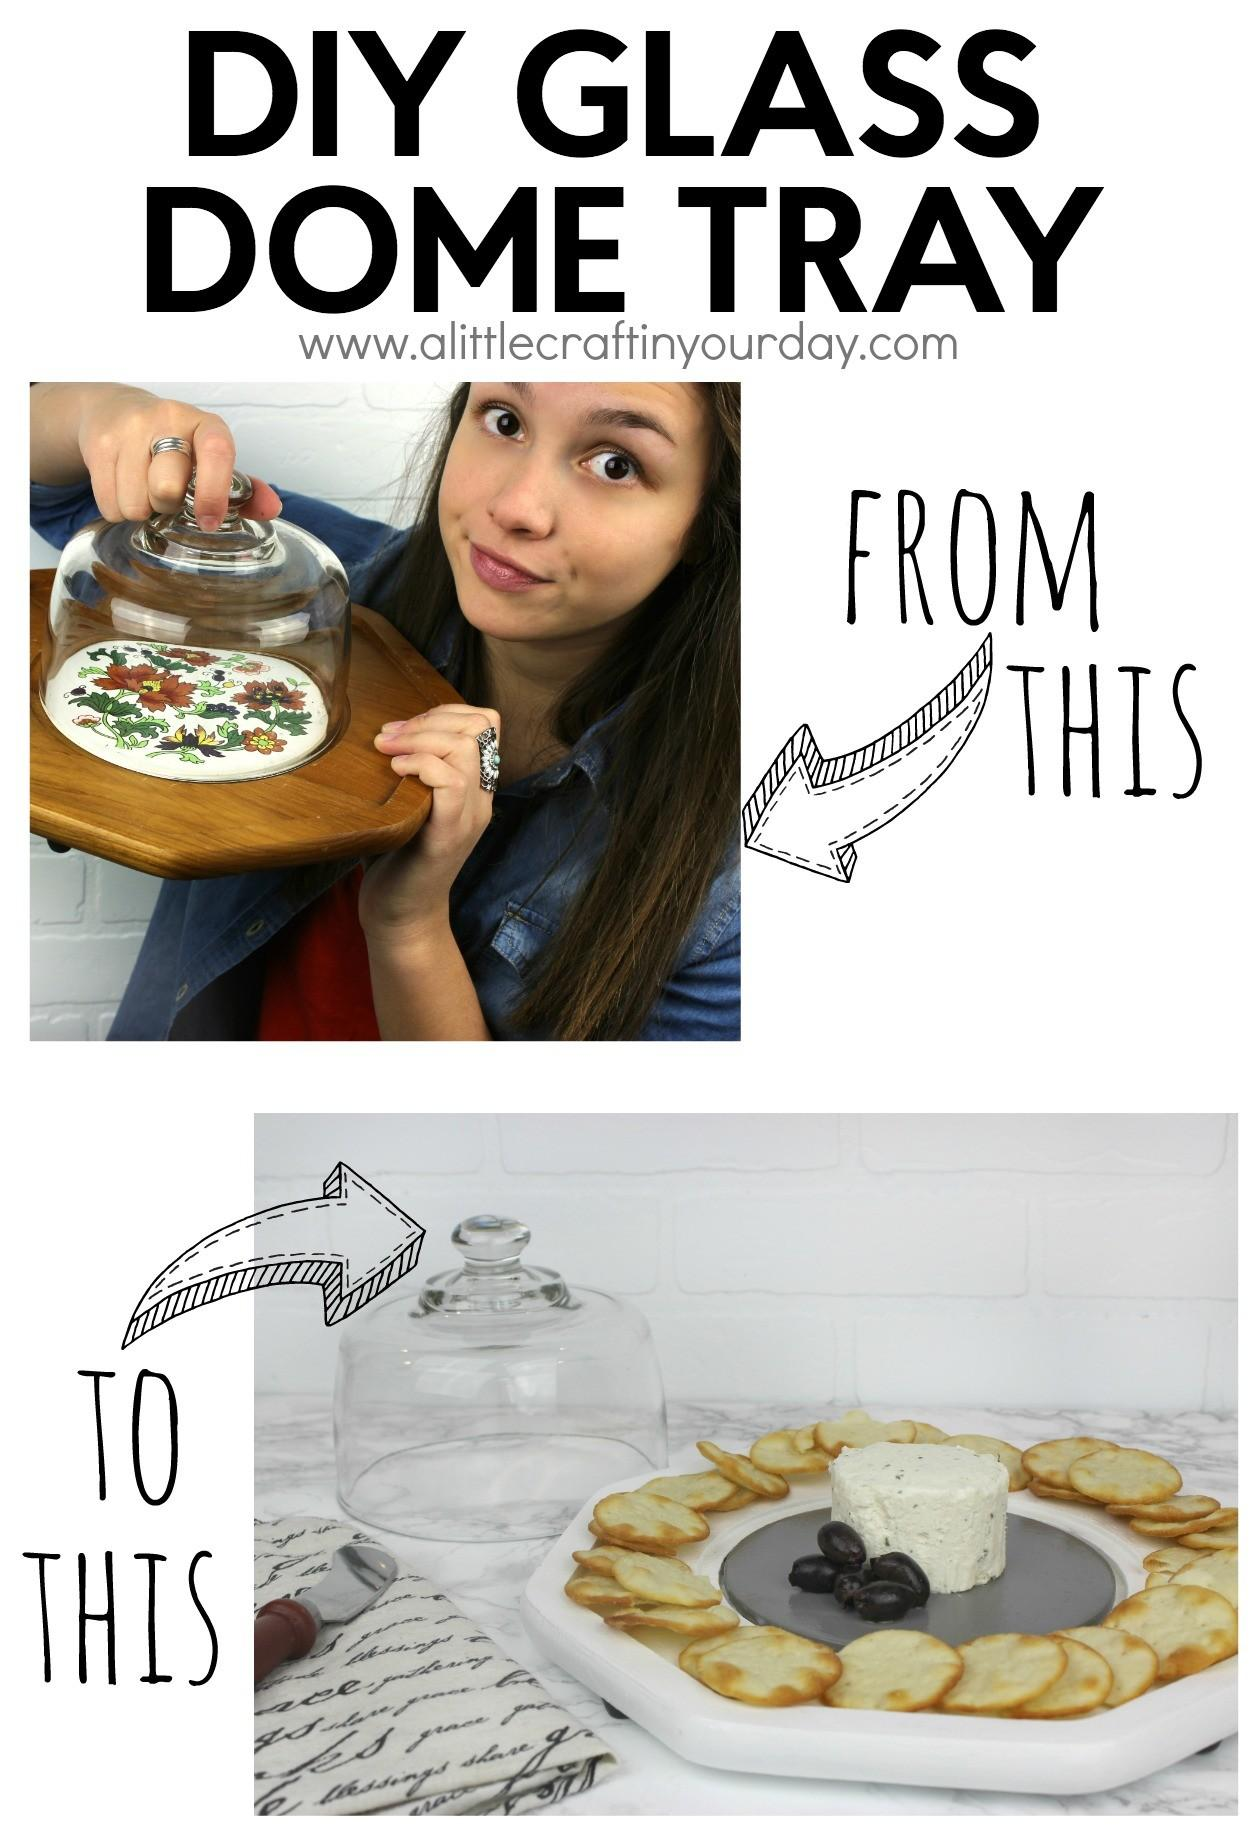 Diy Glass Dome Tray Little Craft Your Day